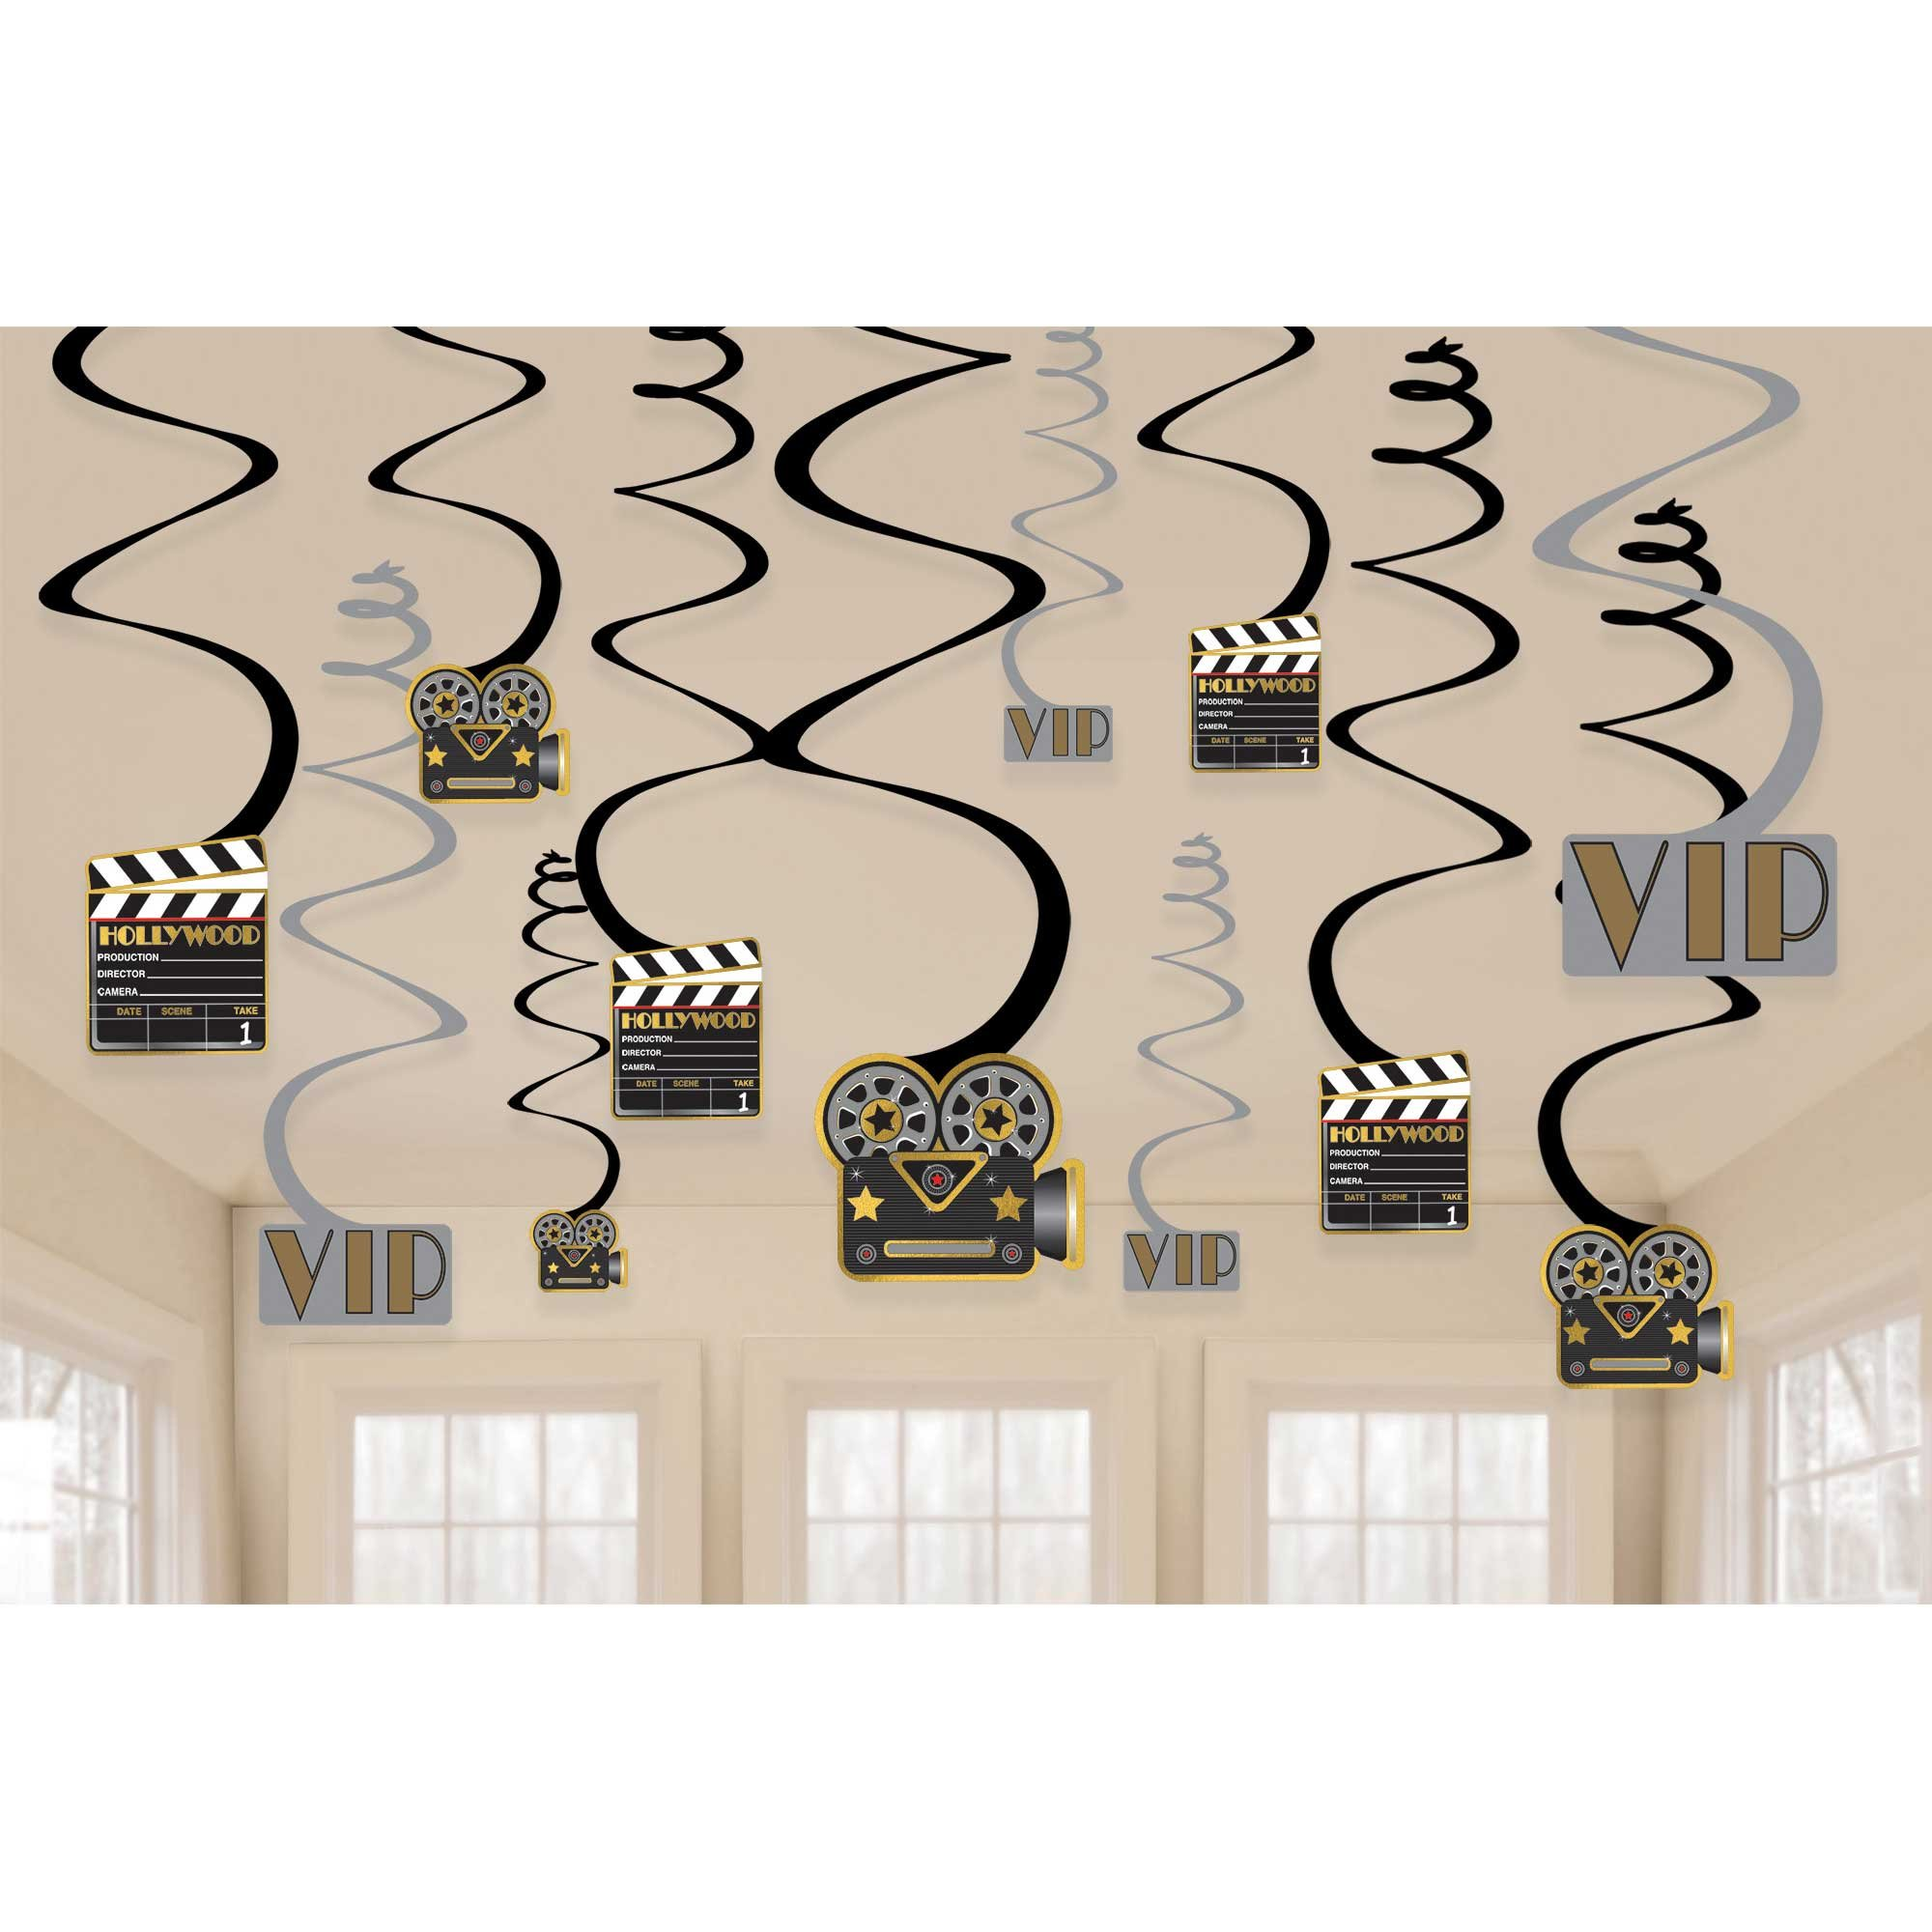 Lights Camera Action! Value Pack Foil Swirl Decorations